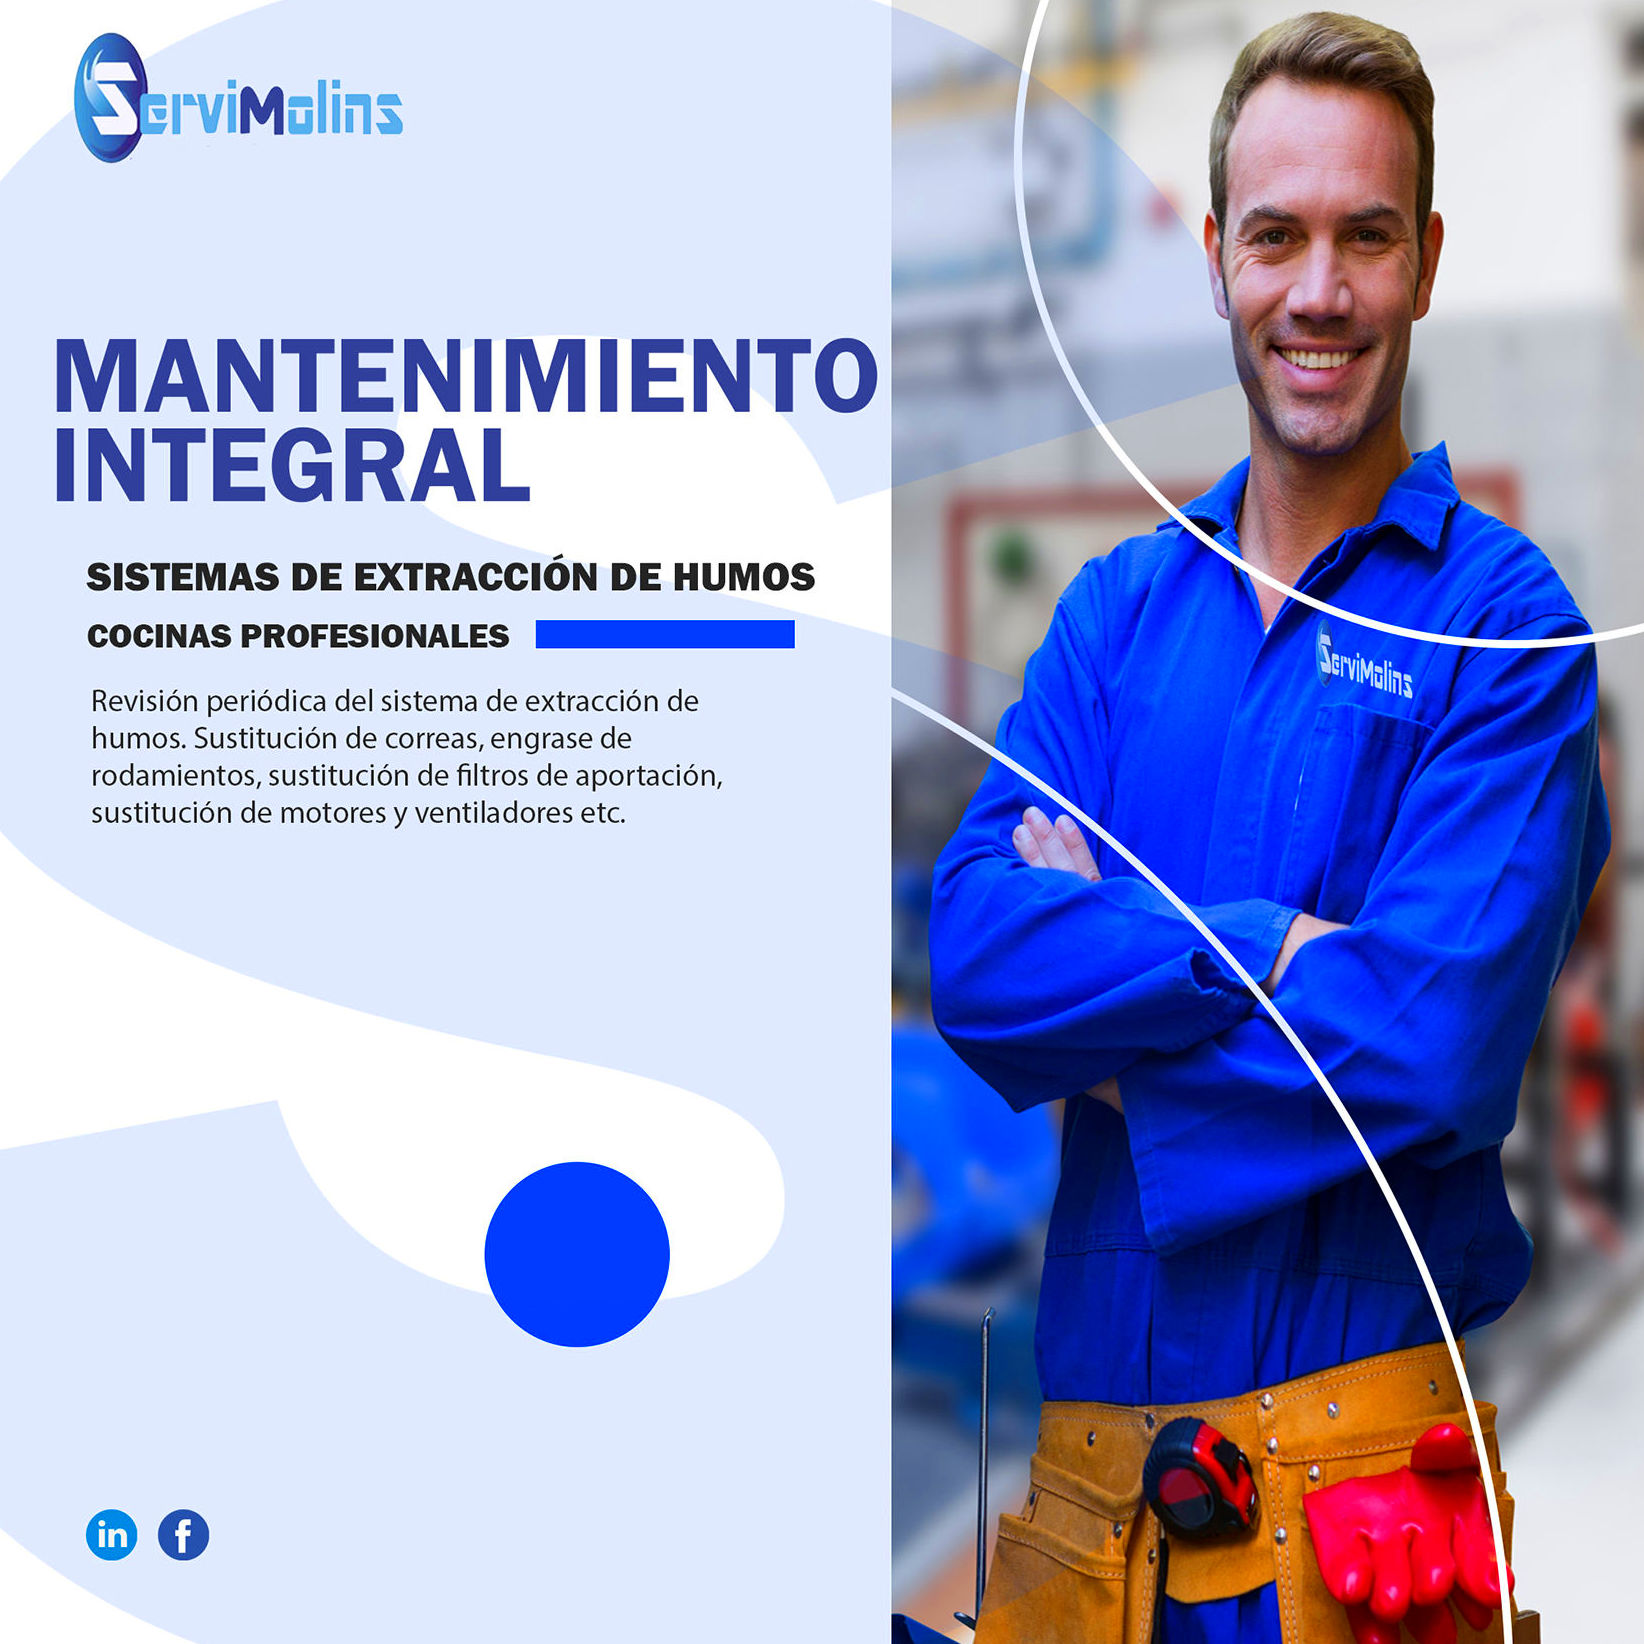 MANTENIMIENTO INTEGRAL